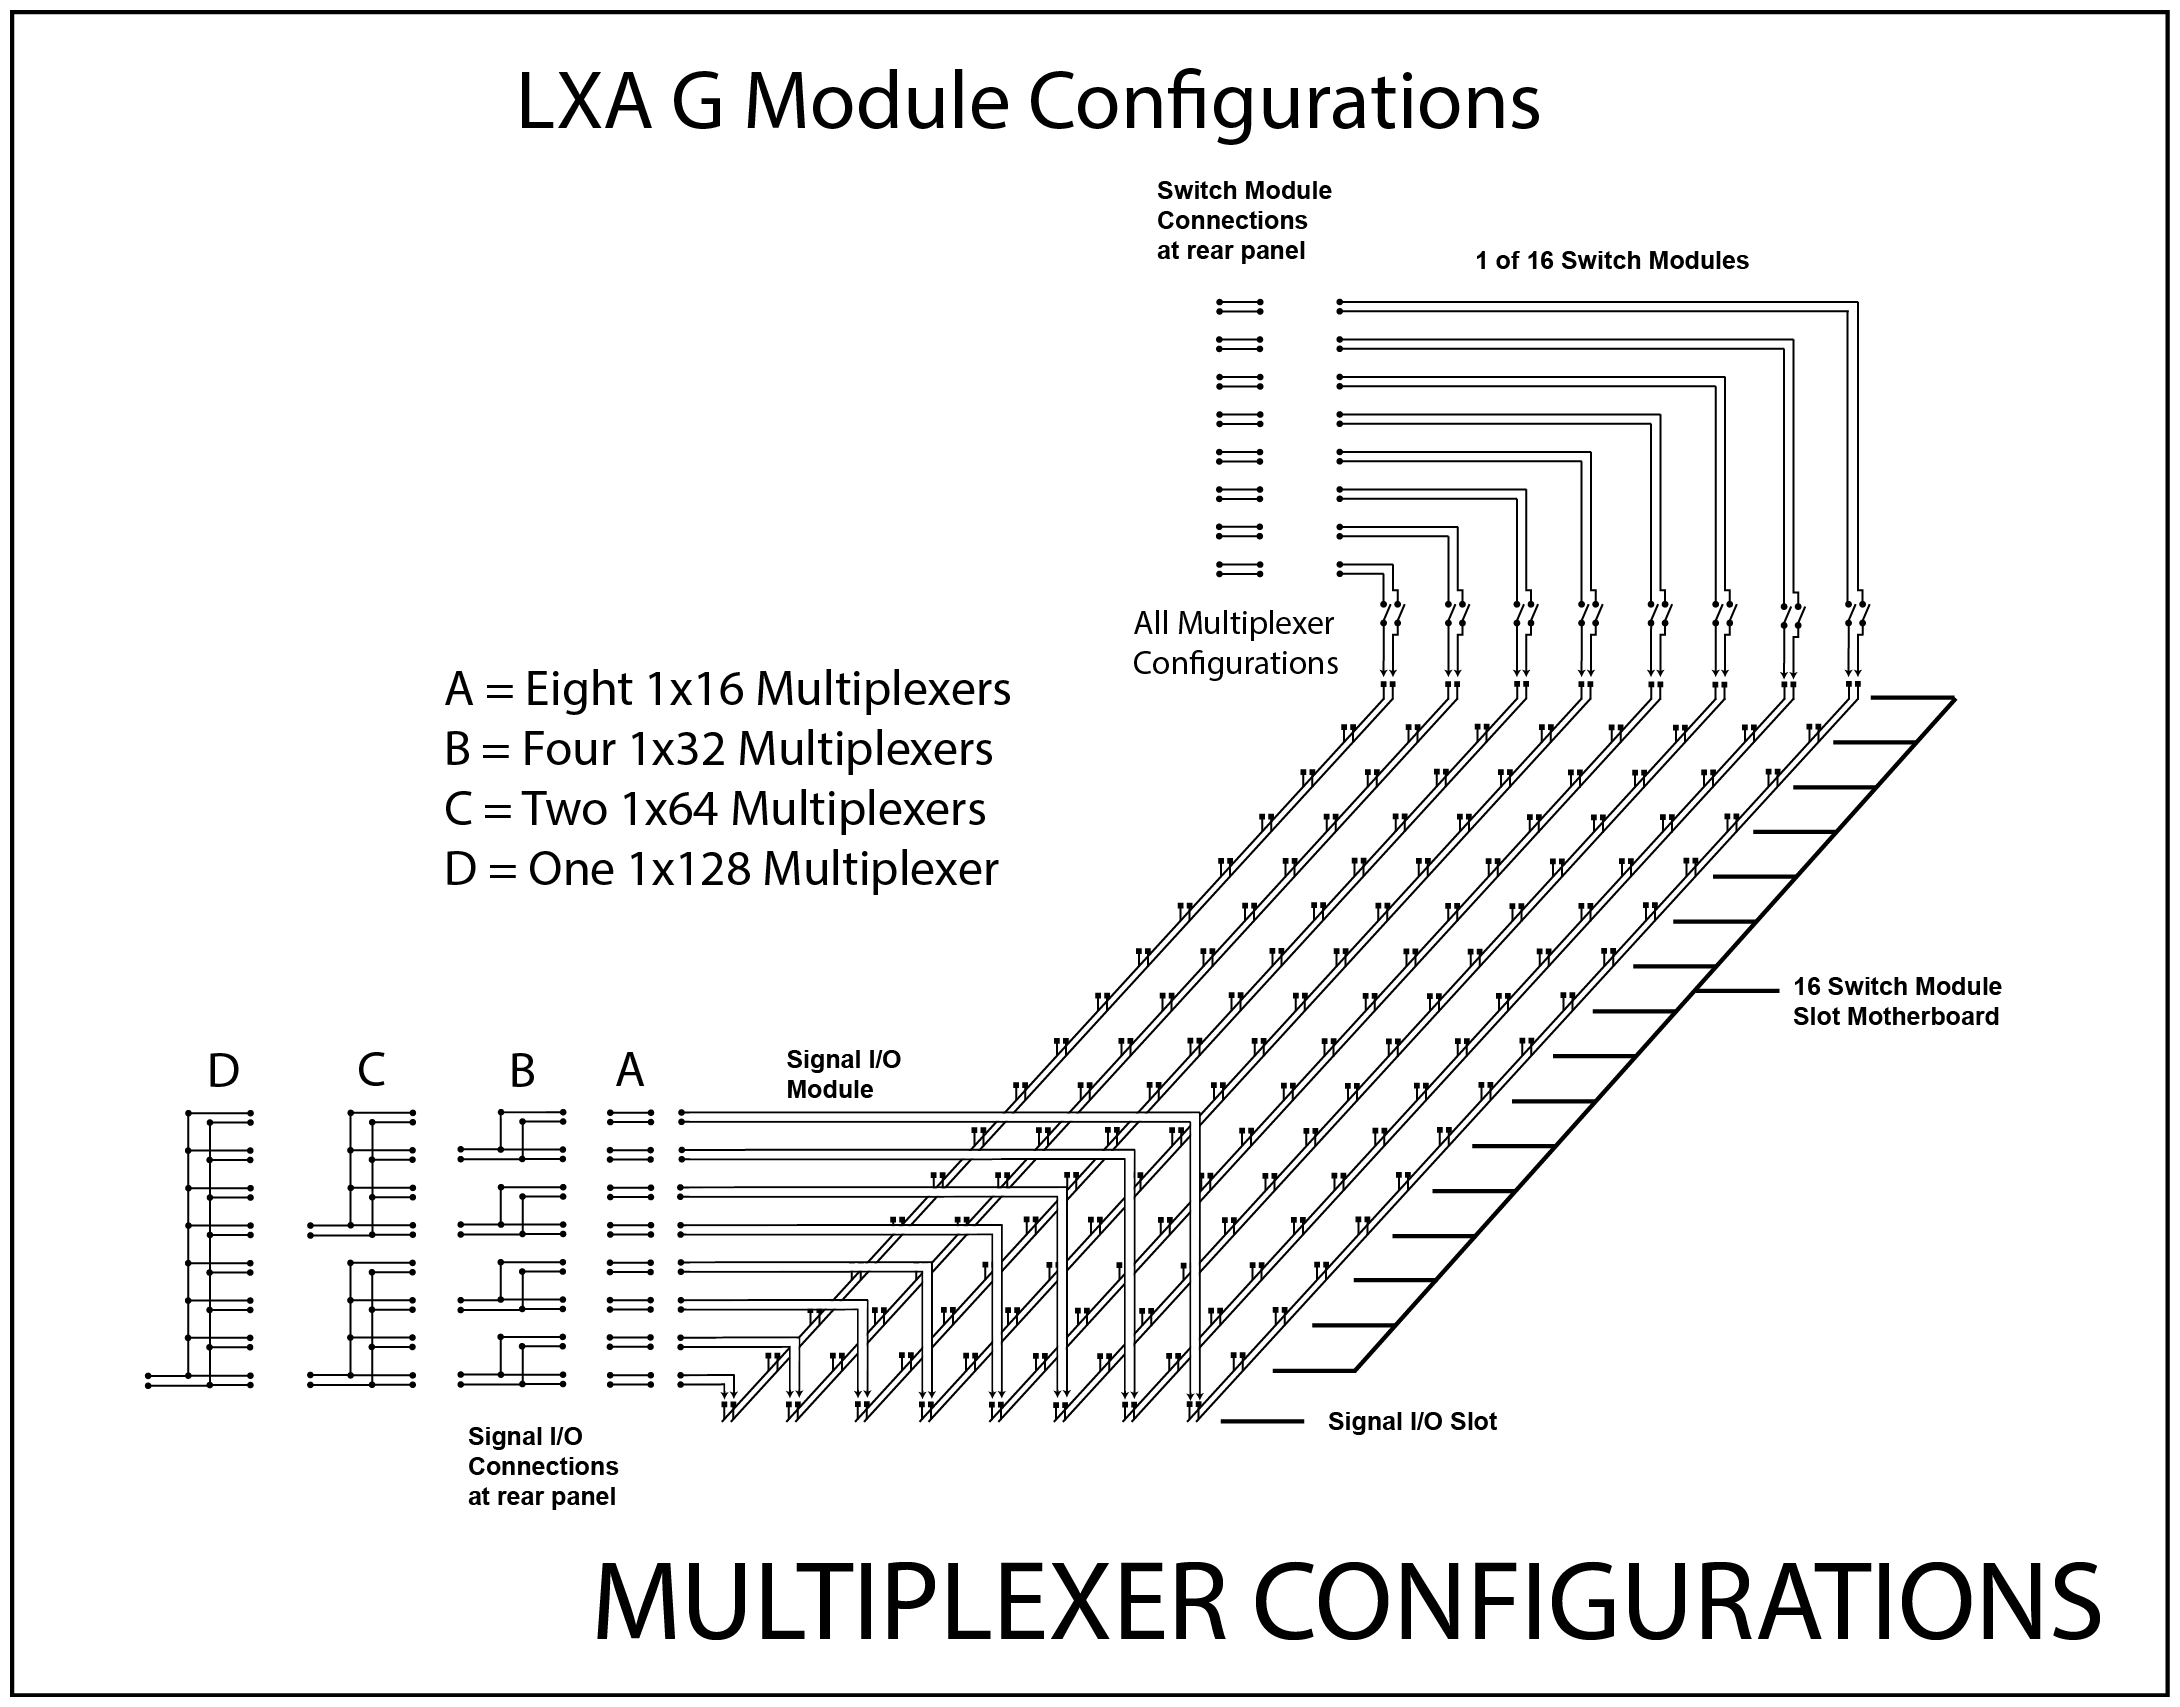 LXA Switch Modules